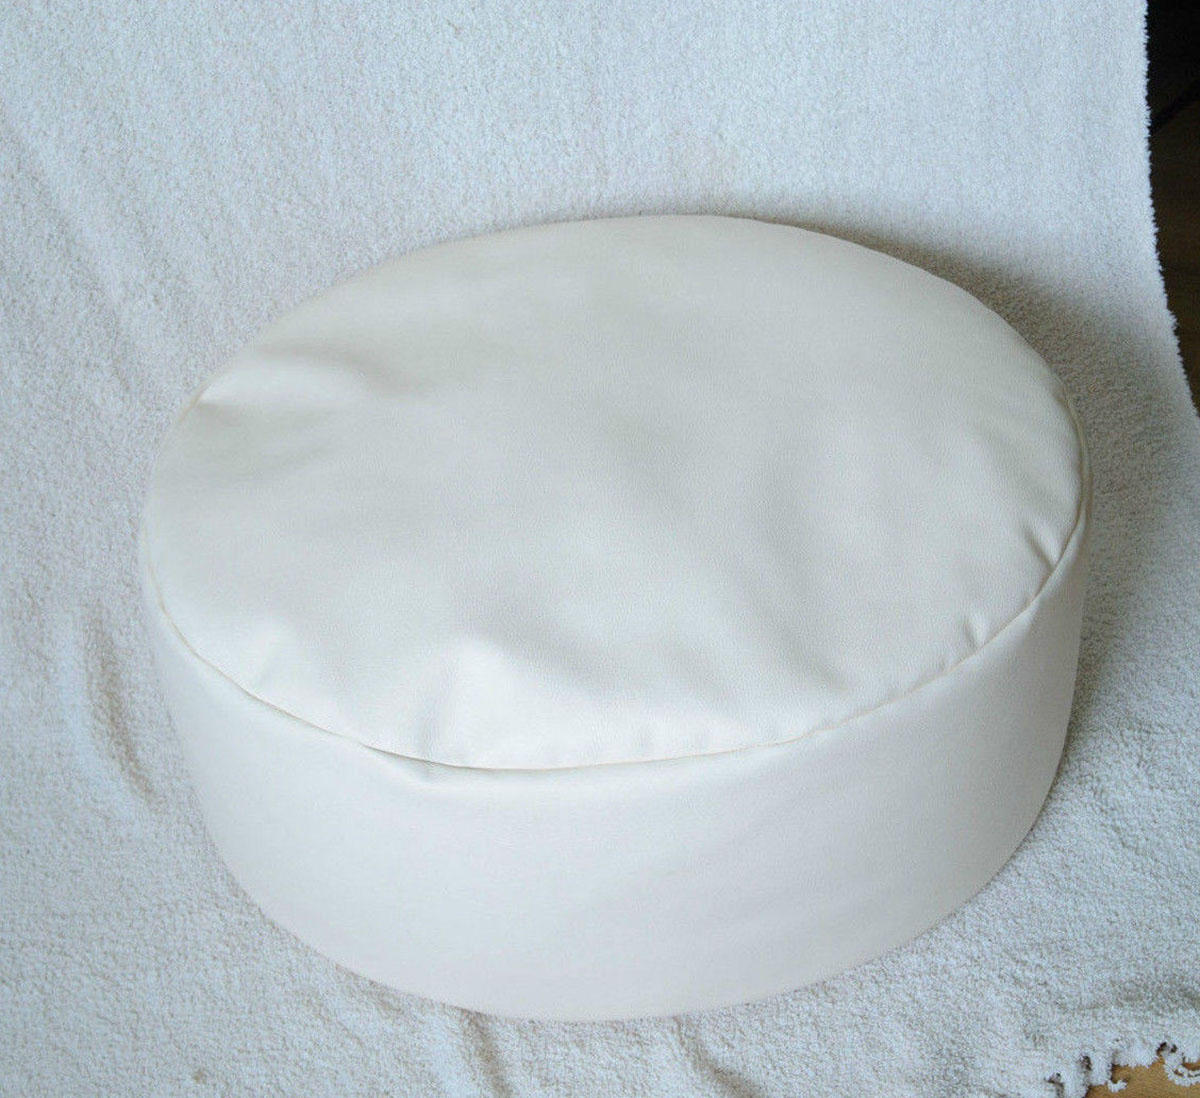 Posing Beanbag Newborn Baby Infant Photography Prop Soft Pillow Bag